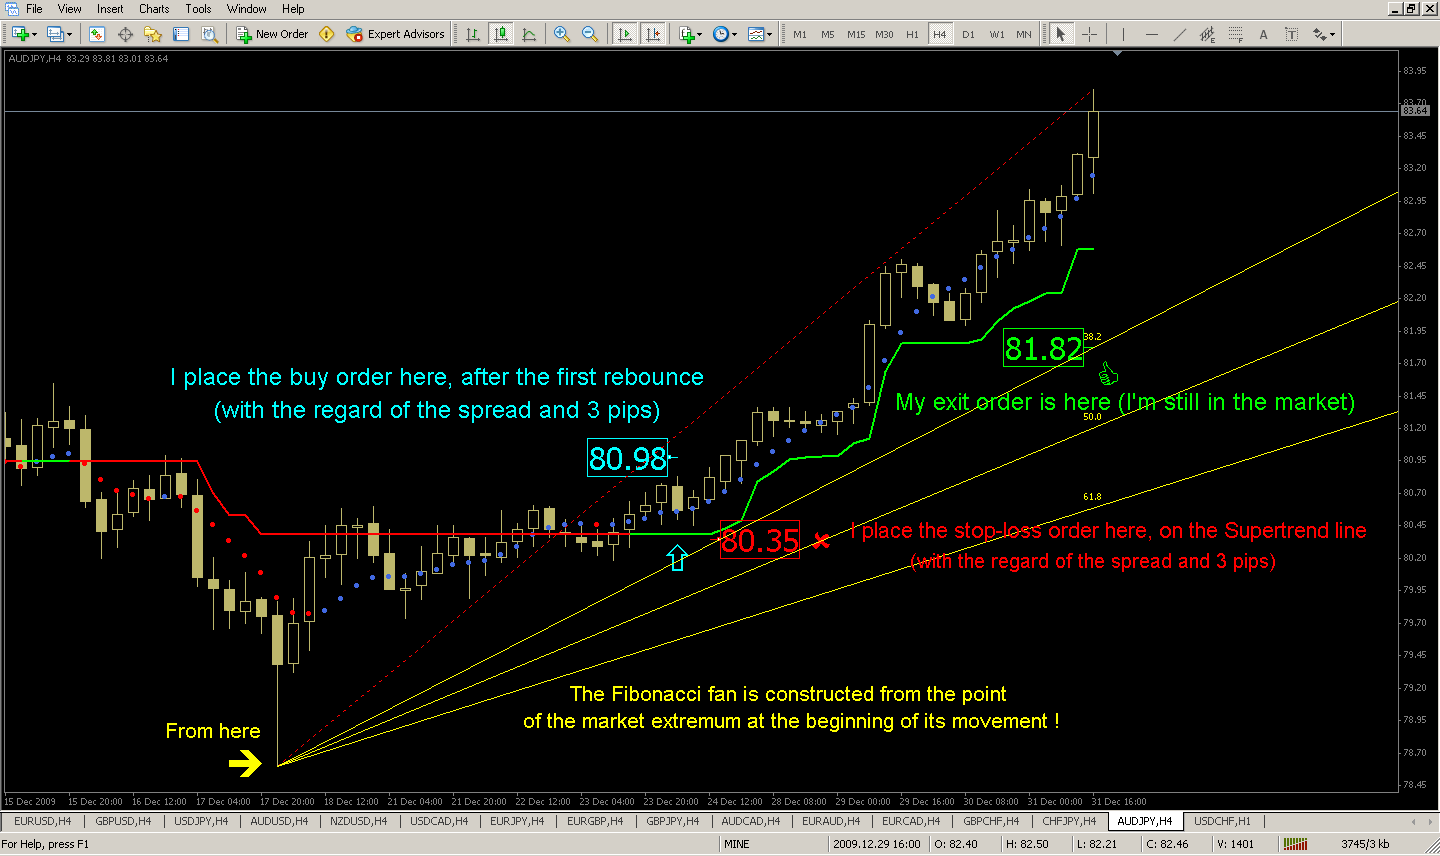 Andrew Forex Trading System - Risk Management - Trading Systems